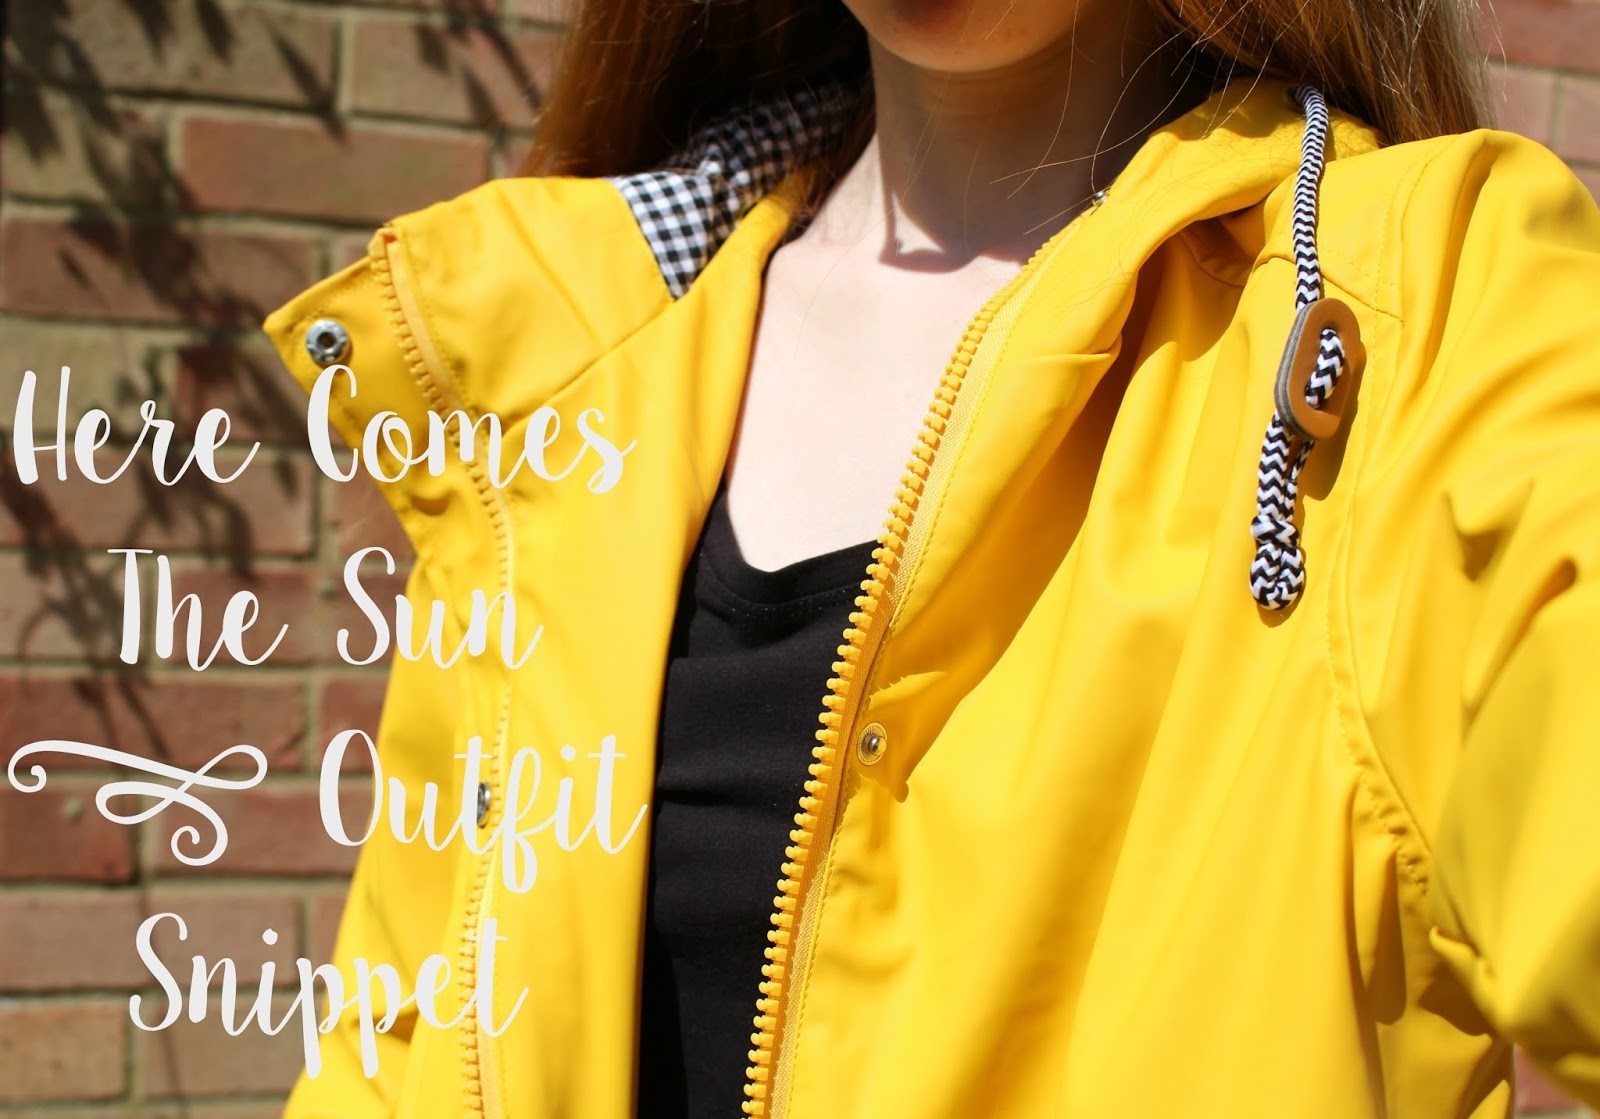 Here Comes The Sun | Outfit Snippet topshop yellow rain mac Uk